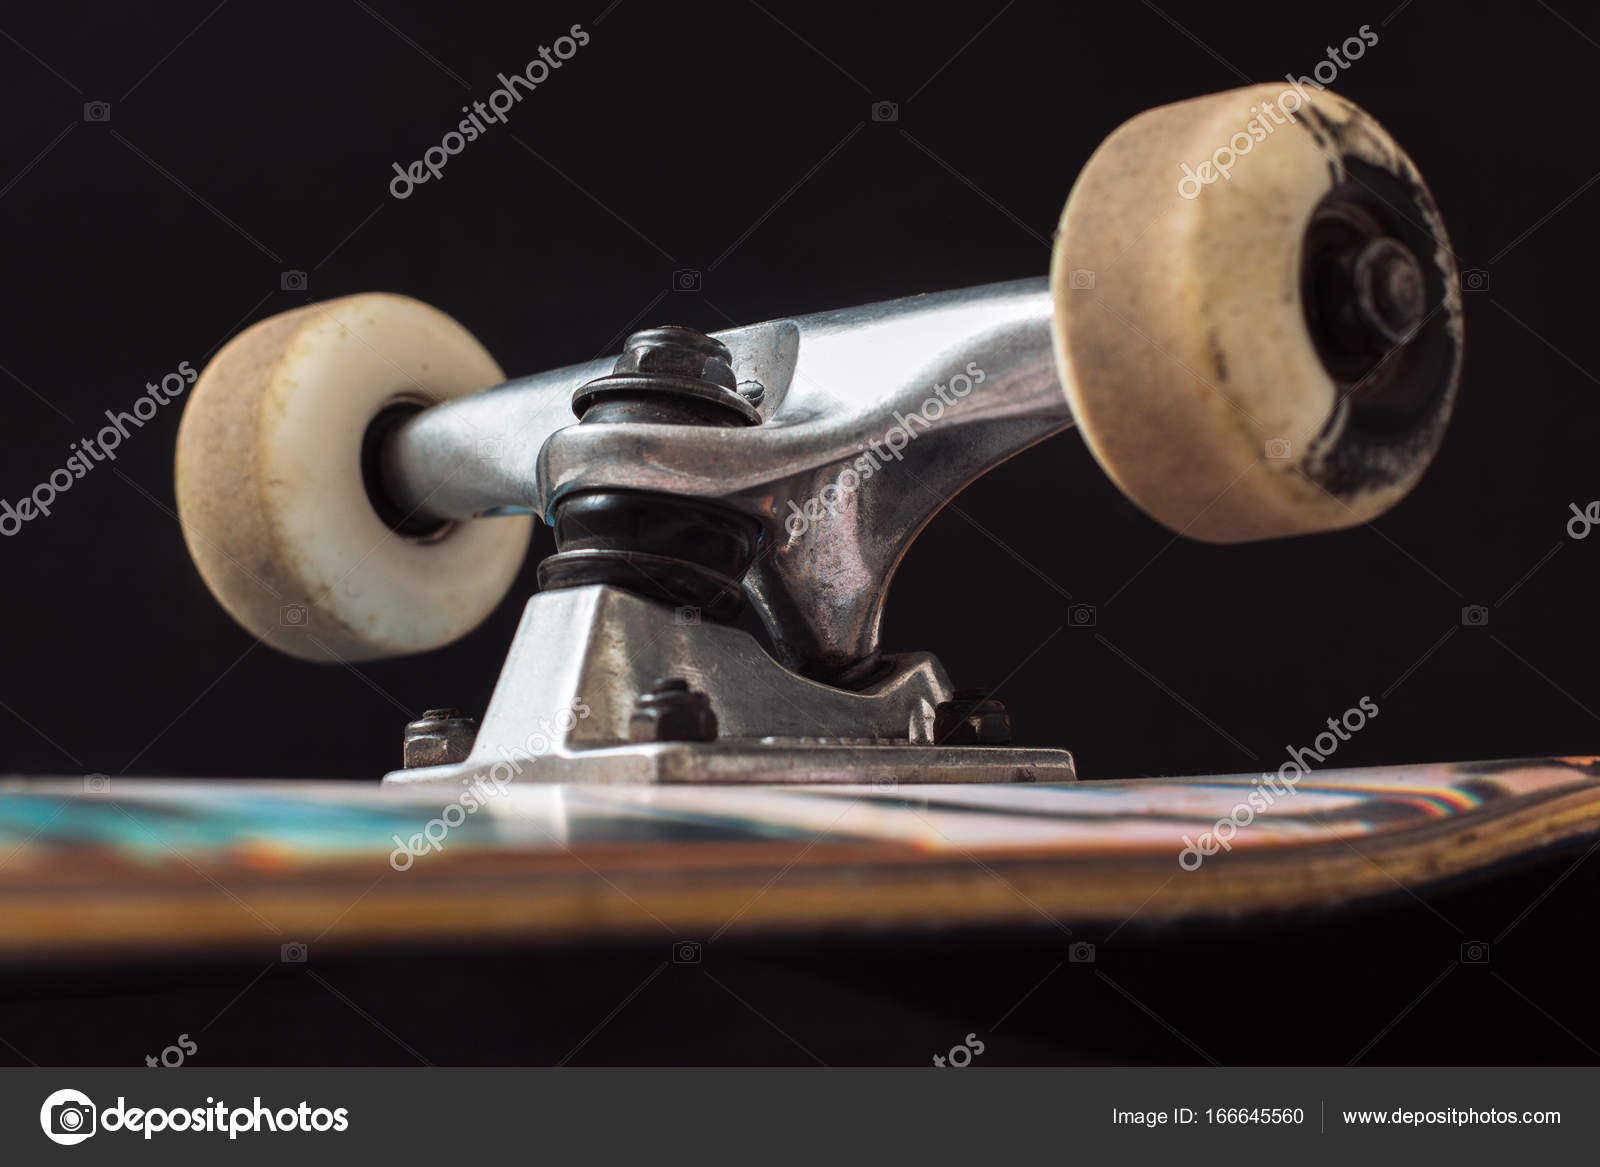 c50a8957 ... up of skateboard truck and wheels on black background. Advertizing  safety construction of professional extreme sport devices and skateboarding  elements.